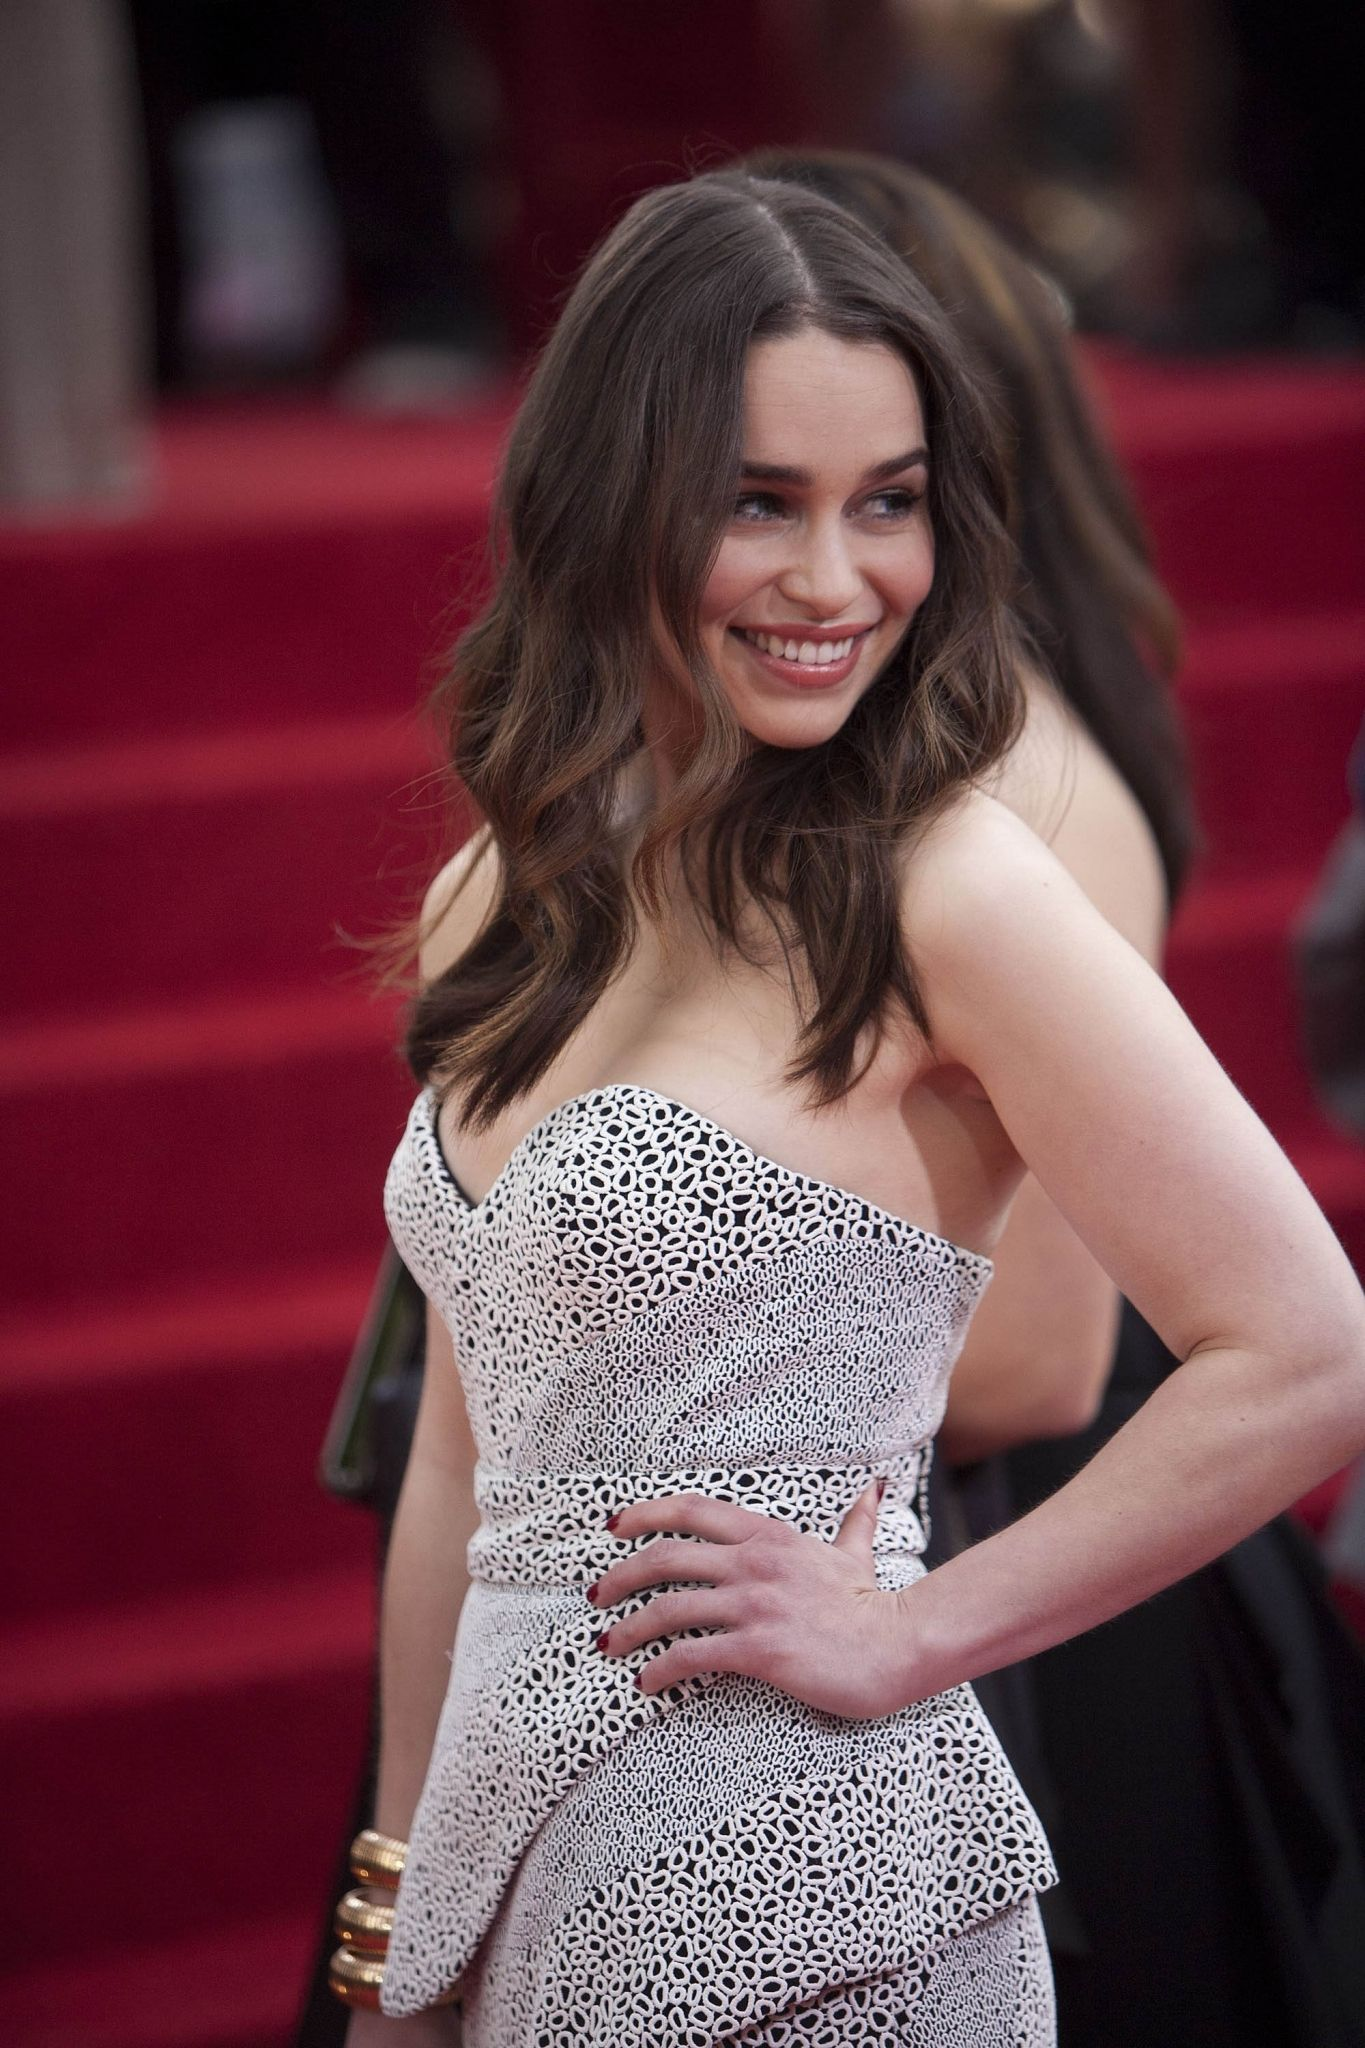 Pin on emilia clarke being absolutely